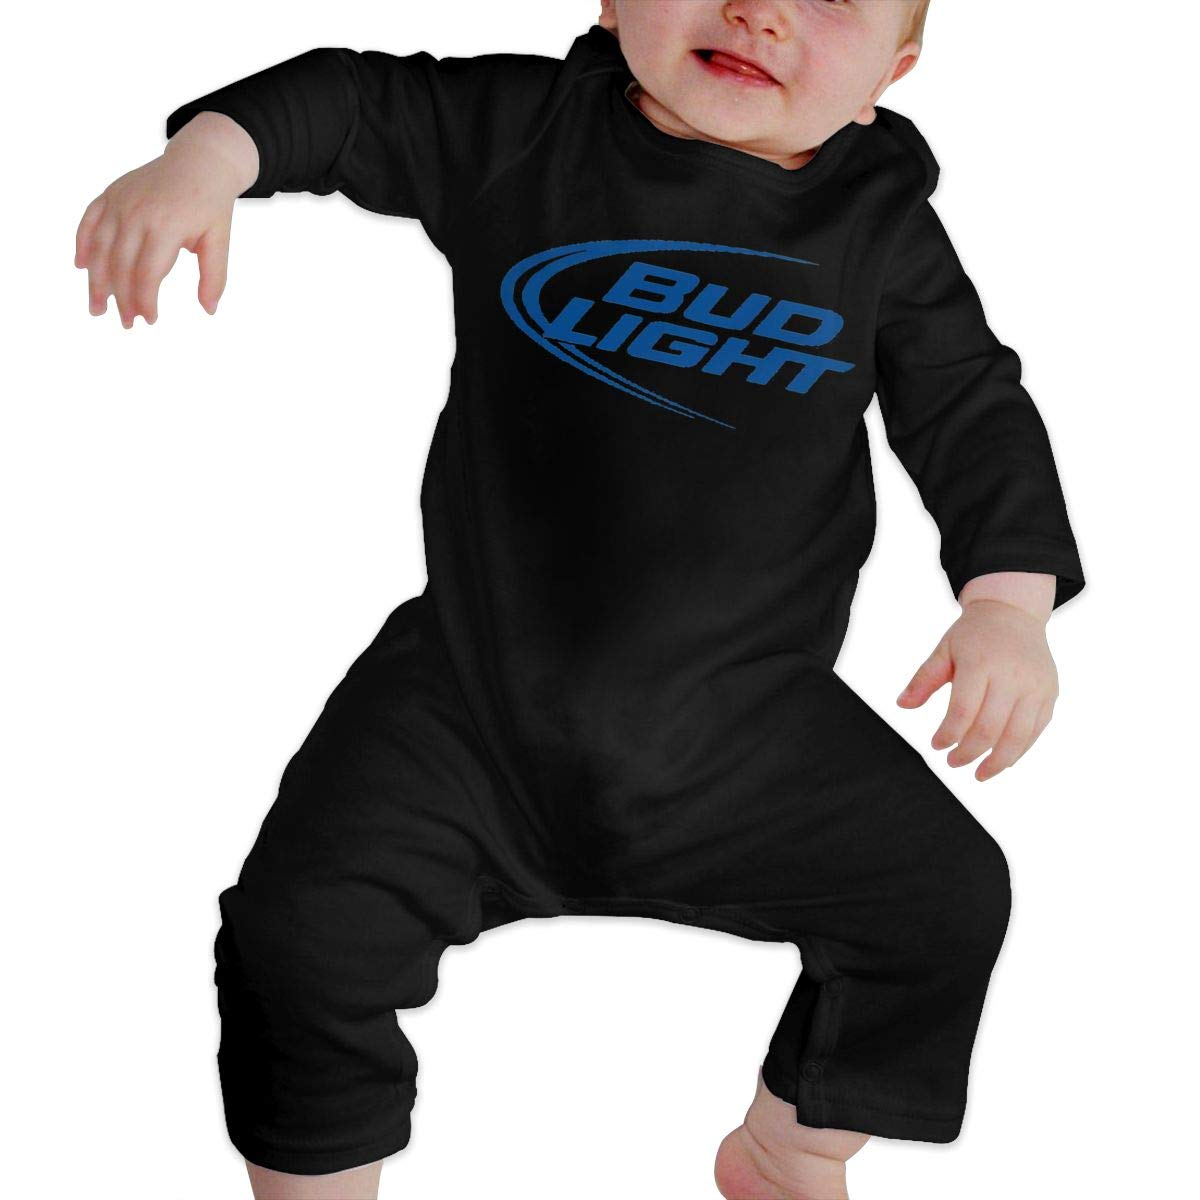 Bud Light Printed Baby Girl Unisex Cotton Long Sleeve Jumpsuit Romper with Headband Infant Clothes